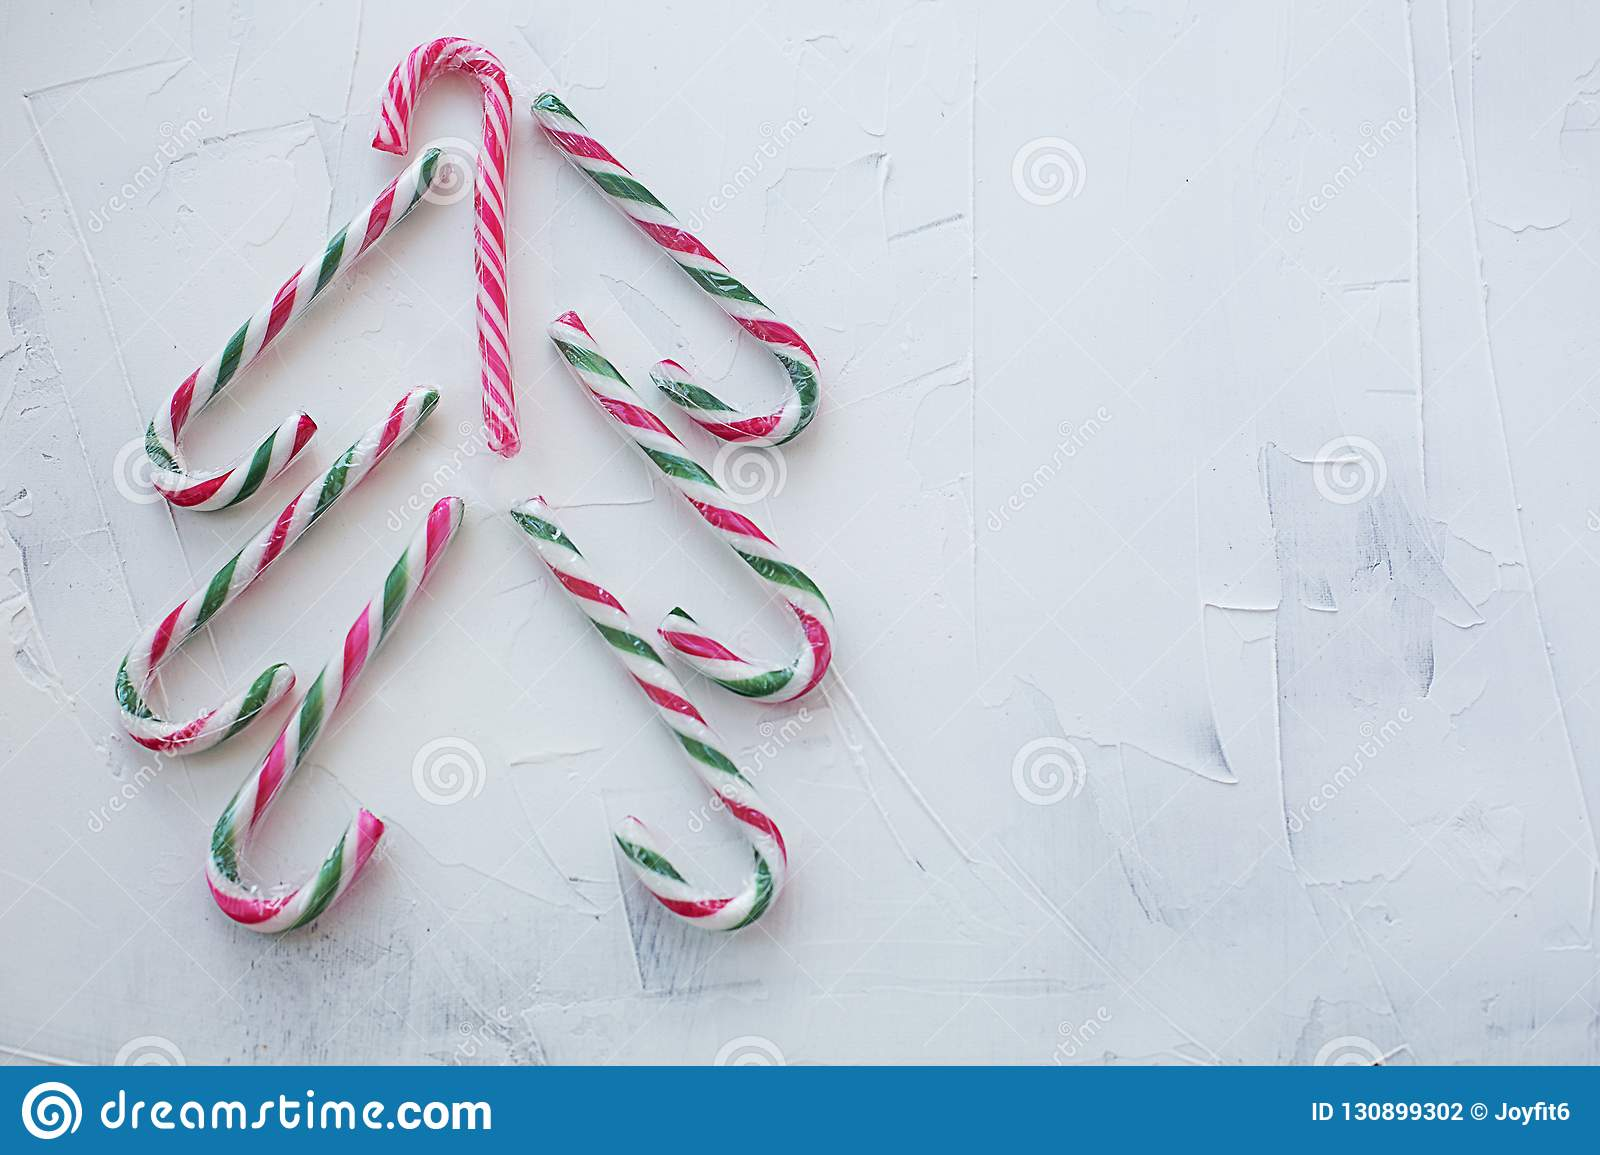 red white and green candy cane christmas tree